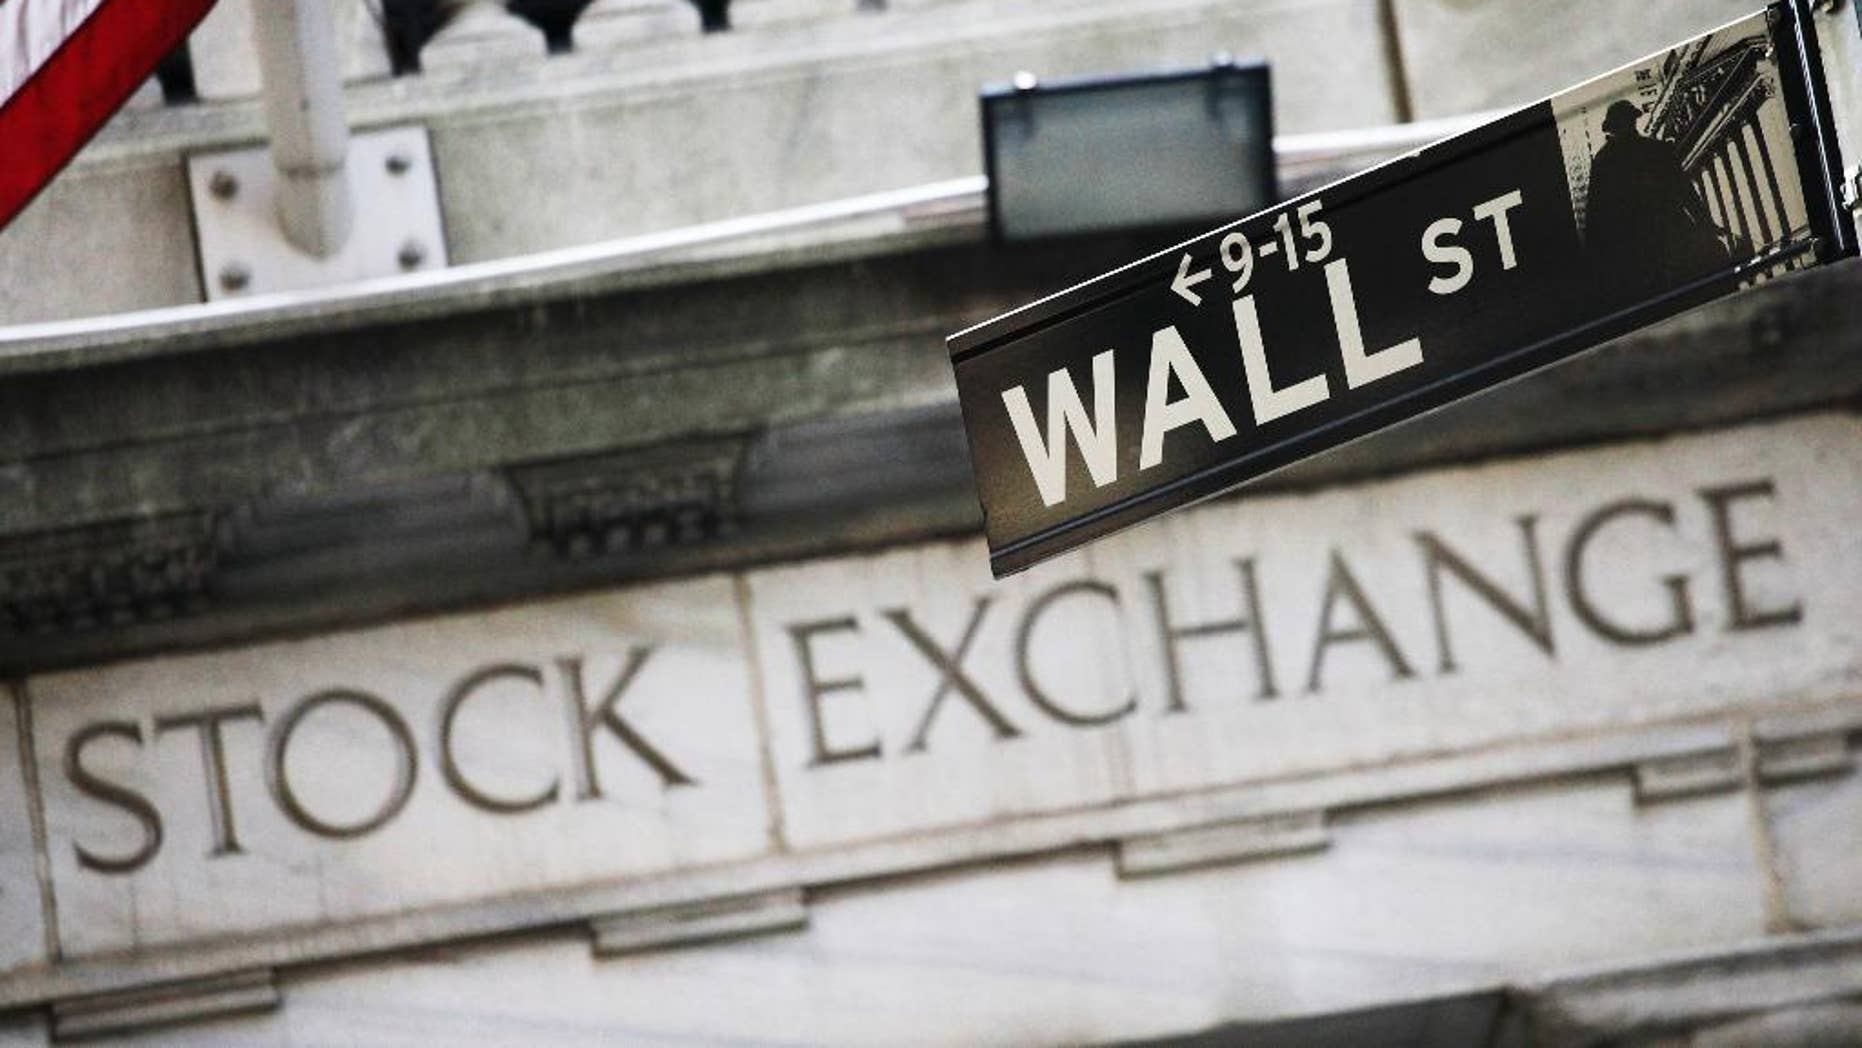 FILE - This July 16, 2013 file photo shows a Wall Street street sign outside the New York Stock Exchange in New York. U.S. stocks are starting the week sharply higher Monday, March 30, 2015, led by energy companies. (AP Photo/Mark Lennihan, File)